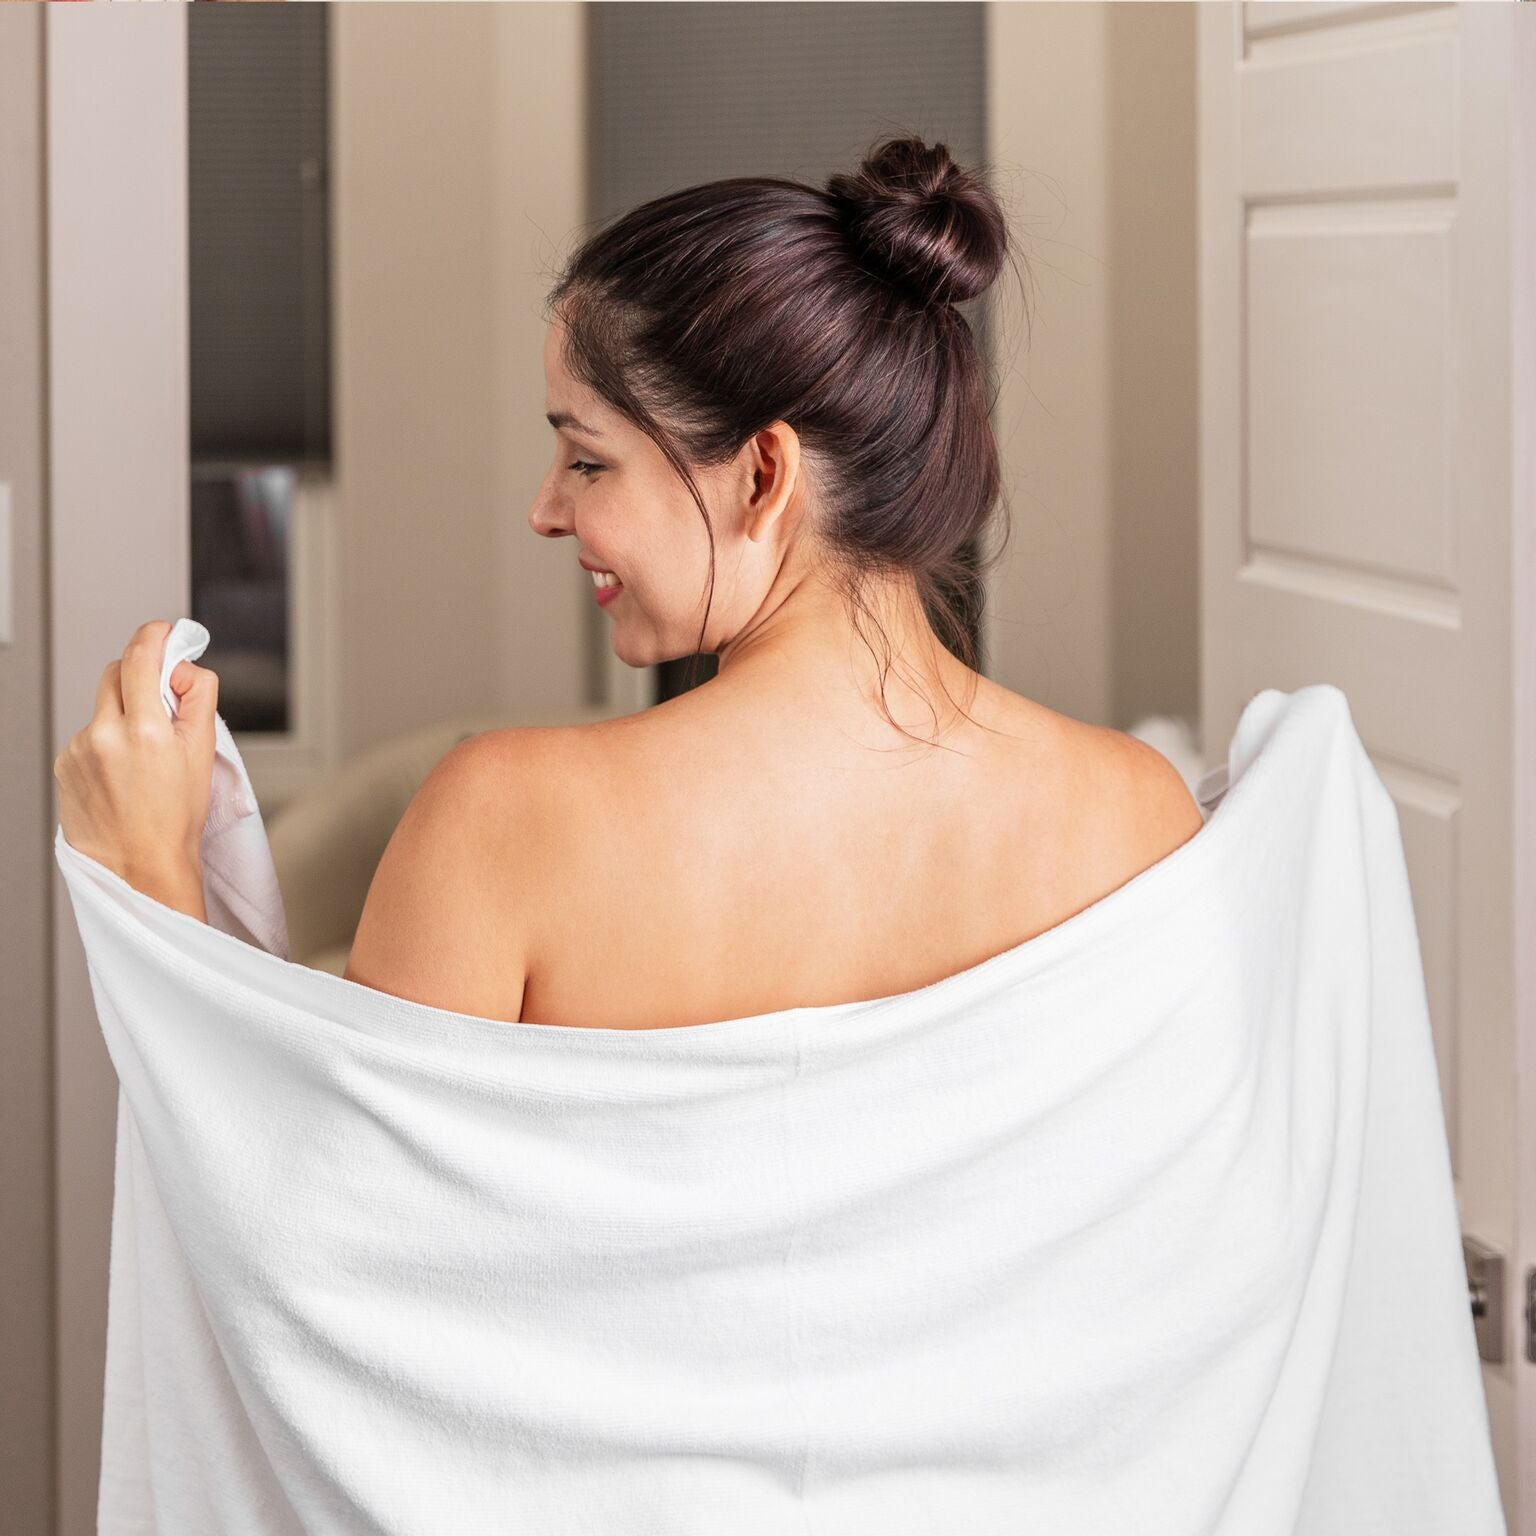 Large Microfiber Bath Towels